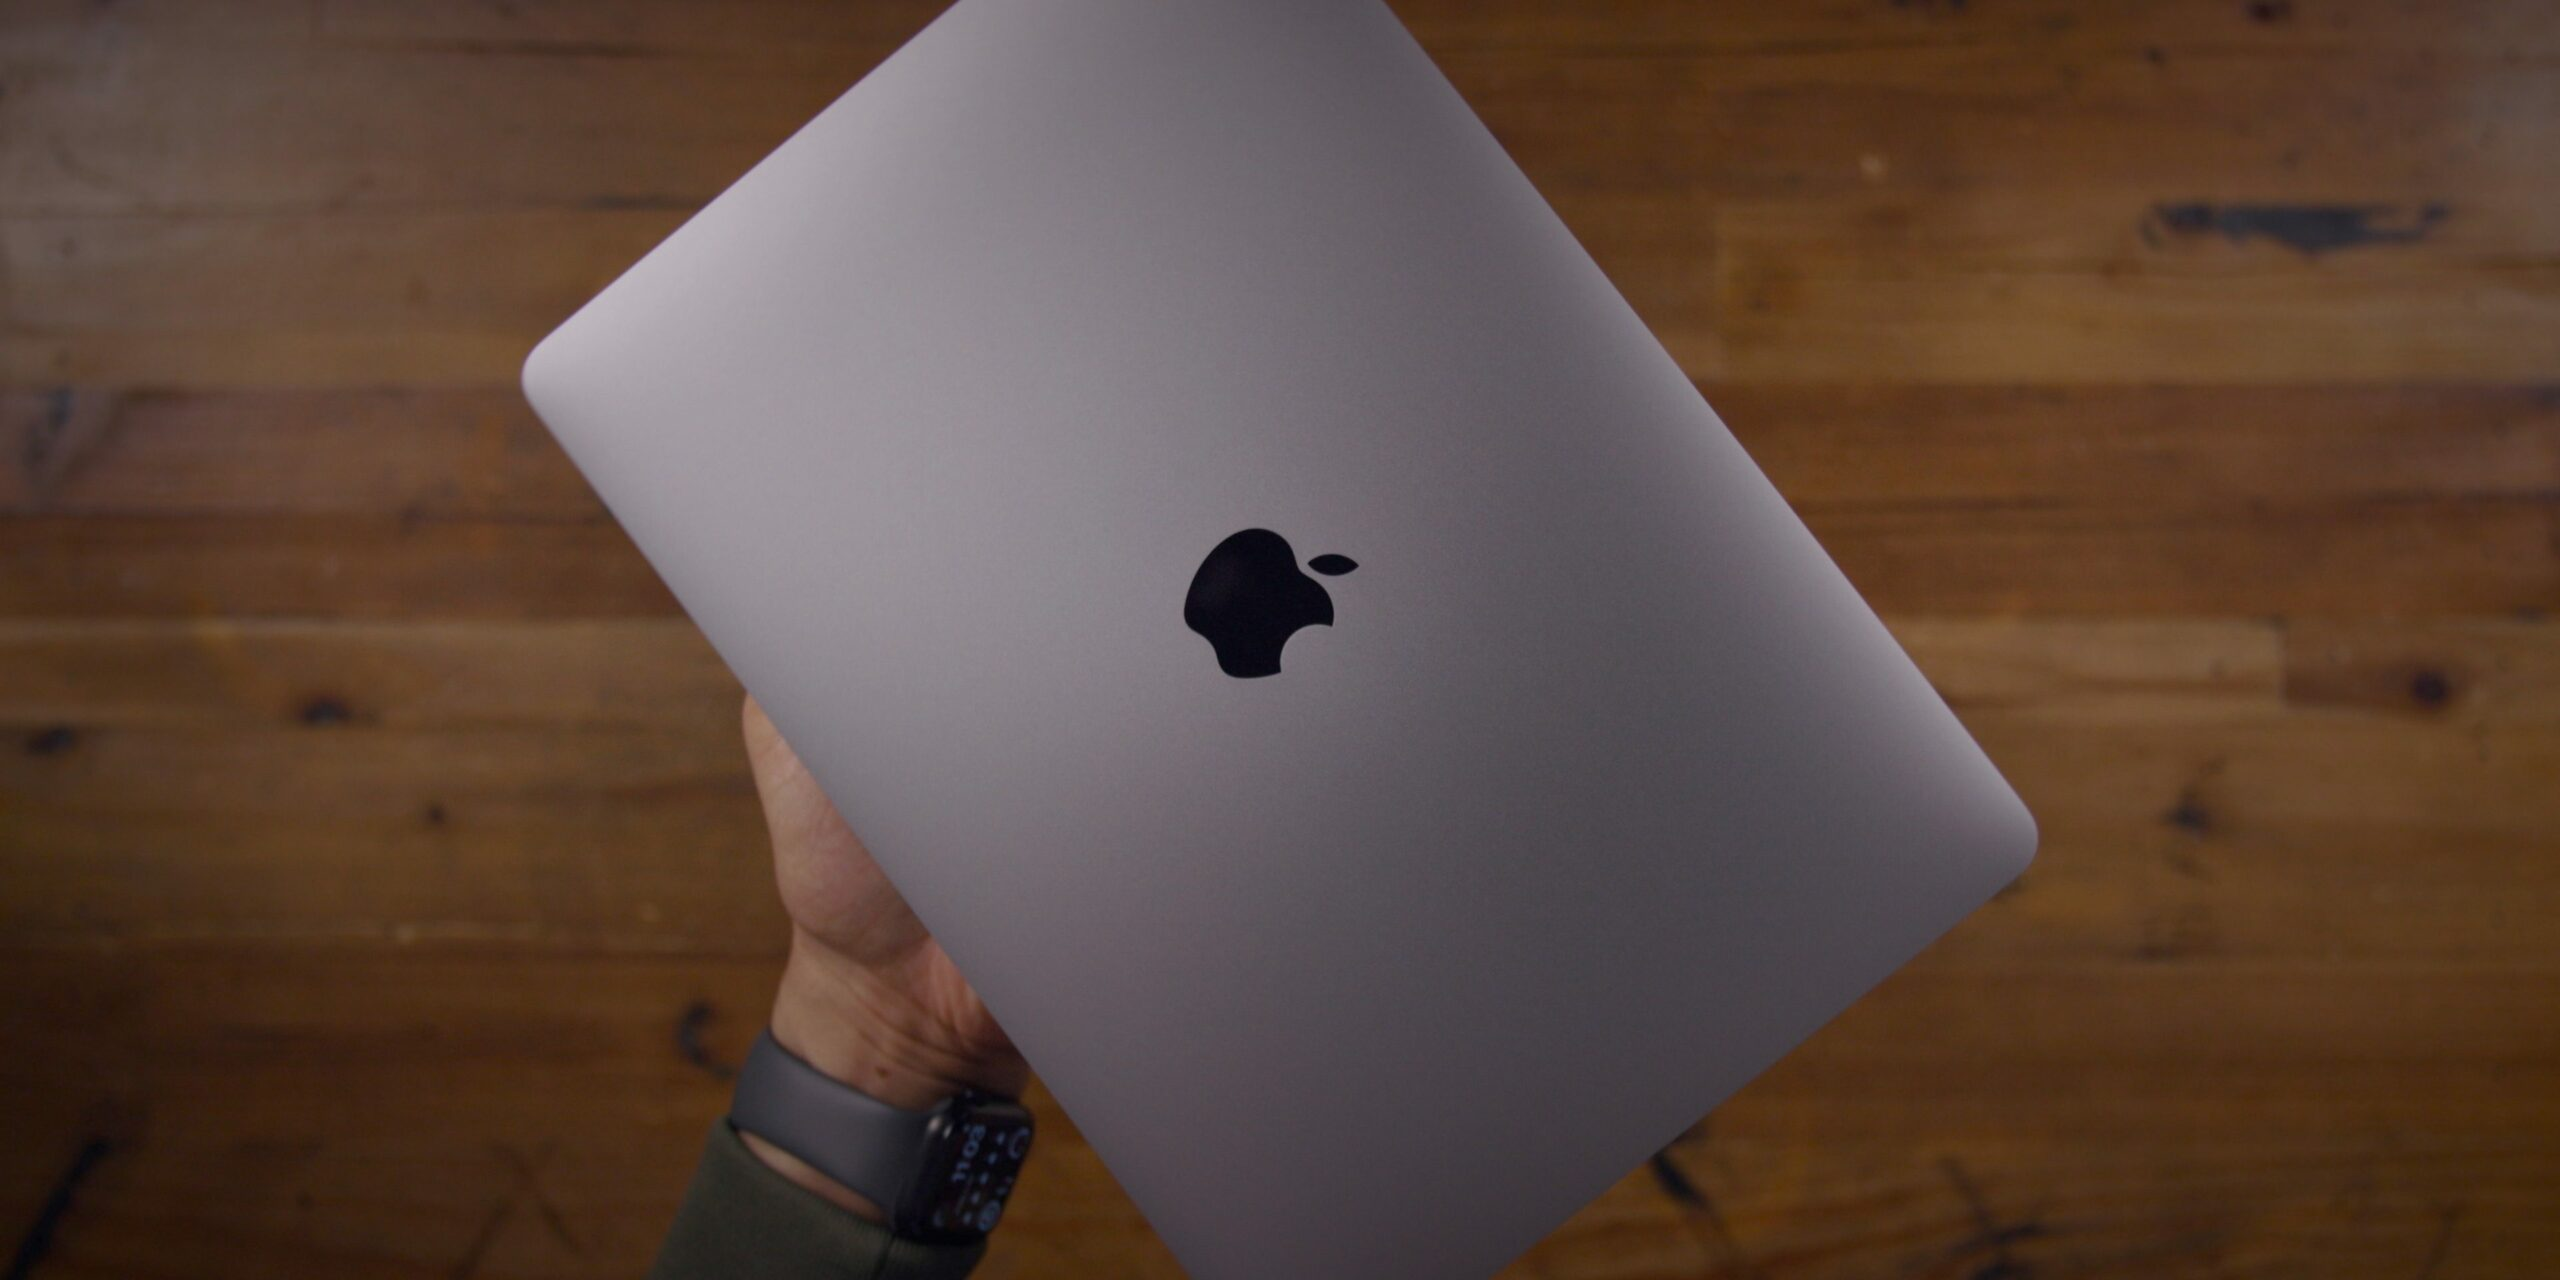 Regulatory filings reveal new 49.9Wh battery from Apple, could be for updated MacBook Air